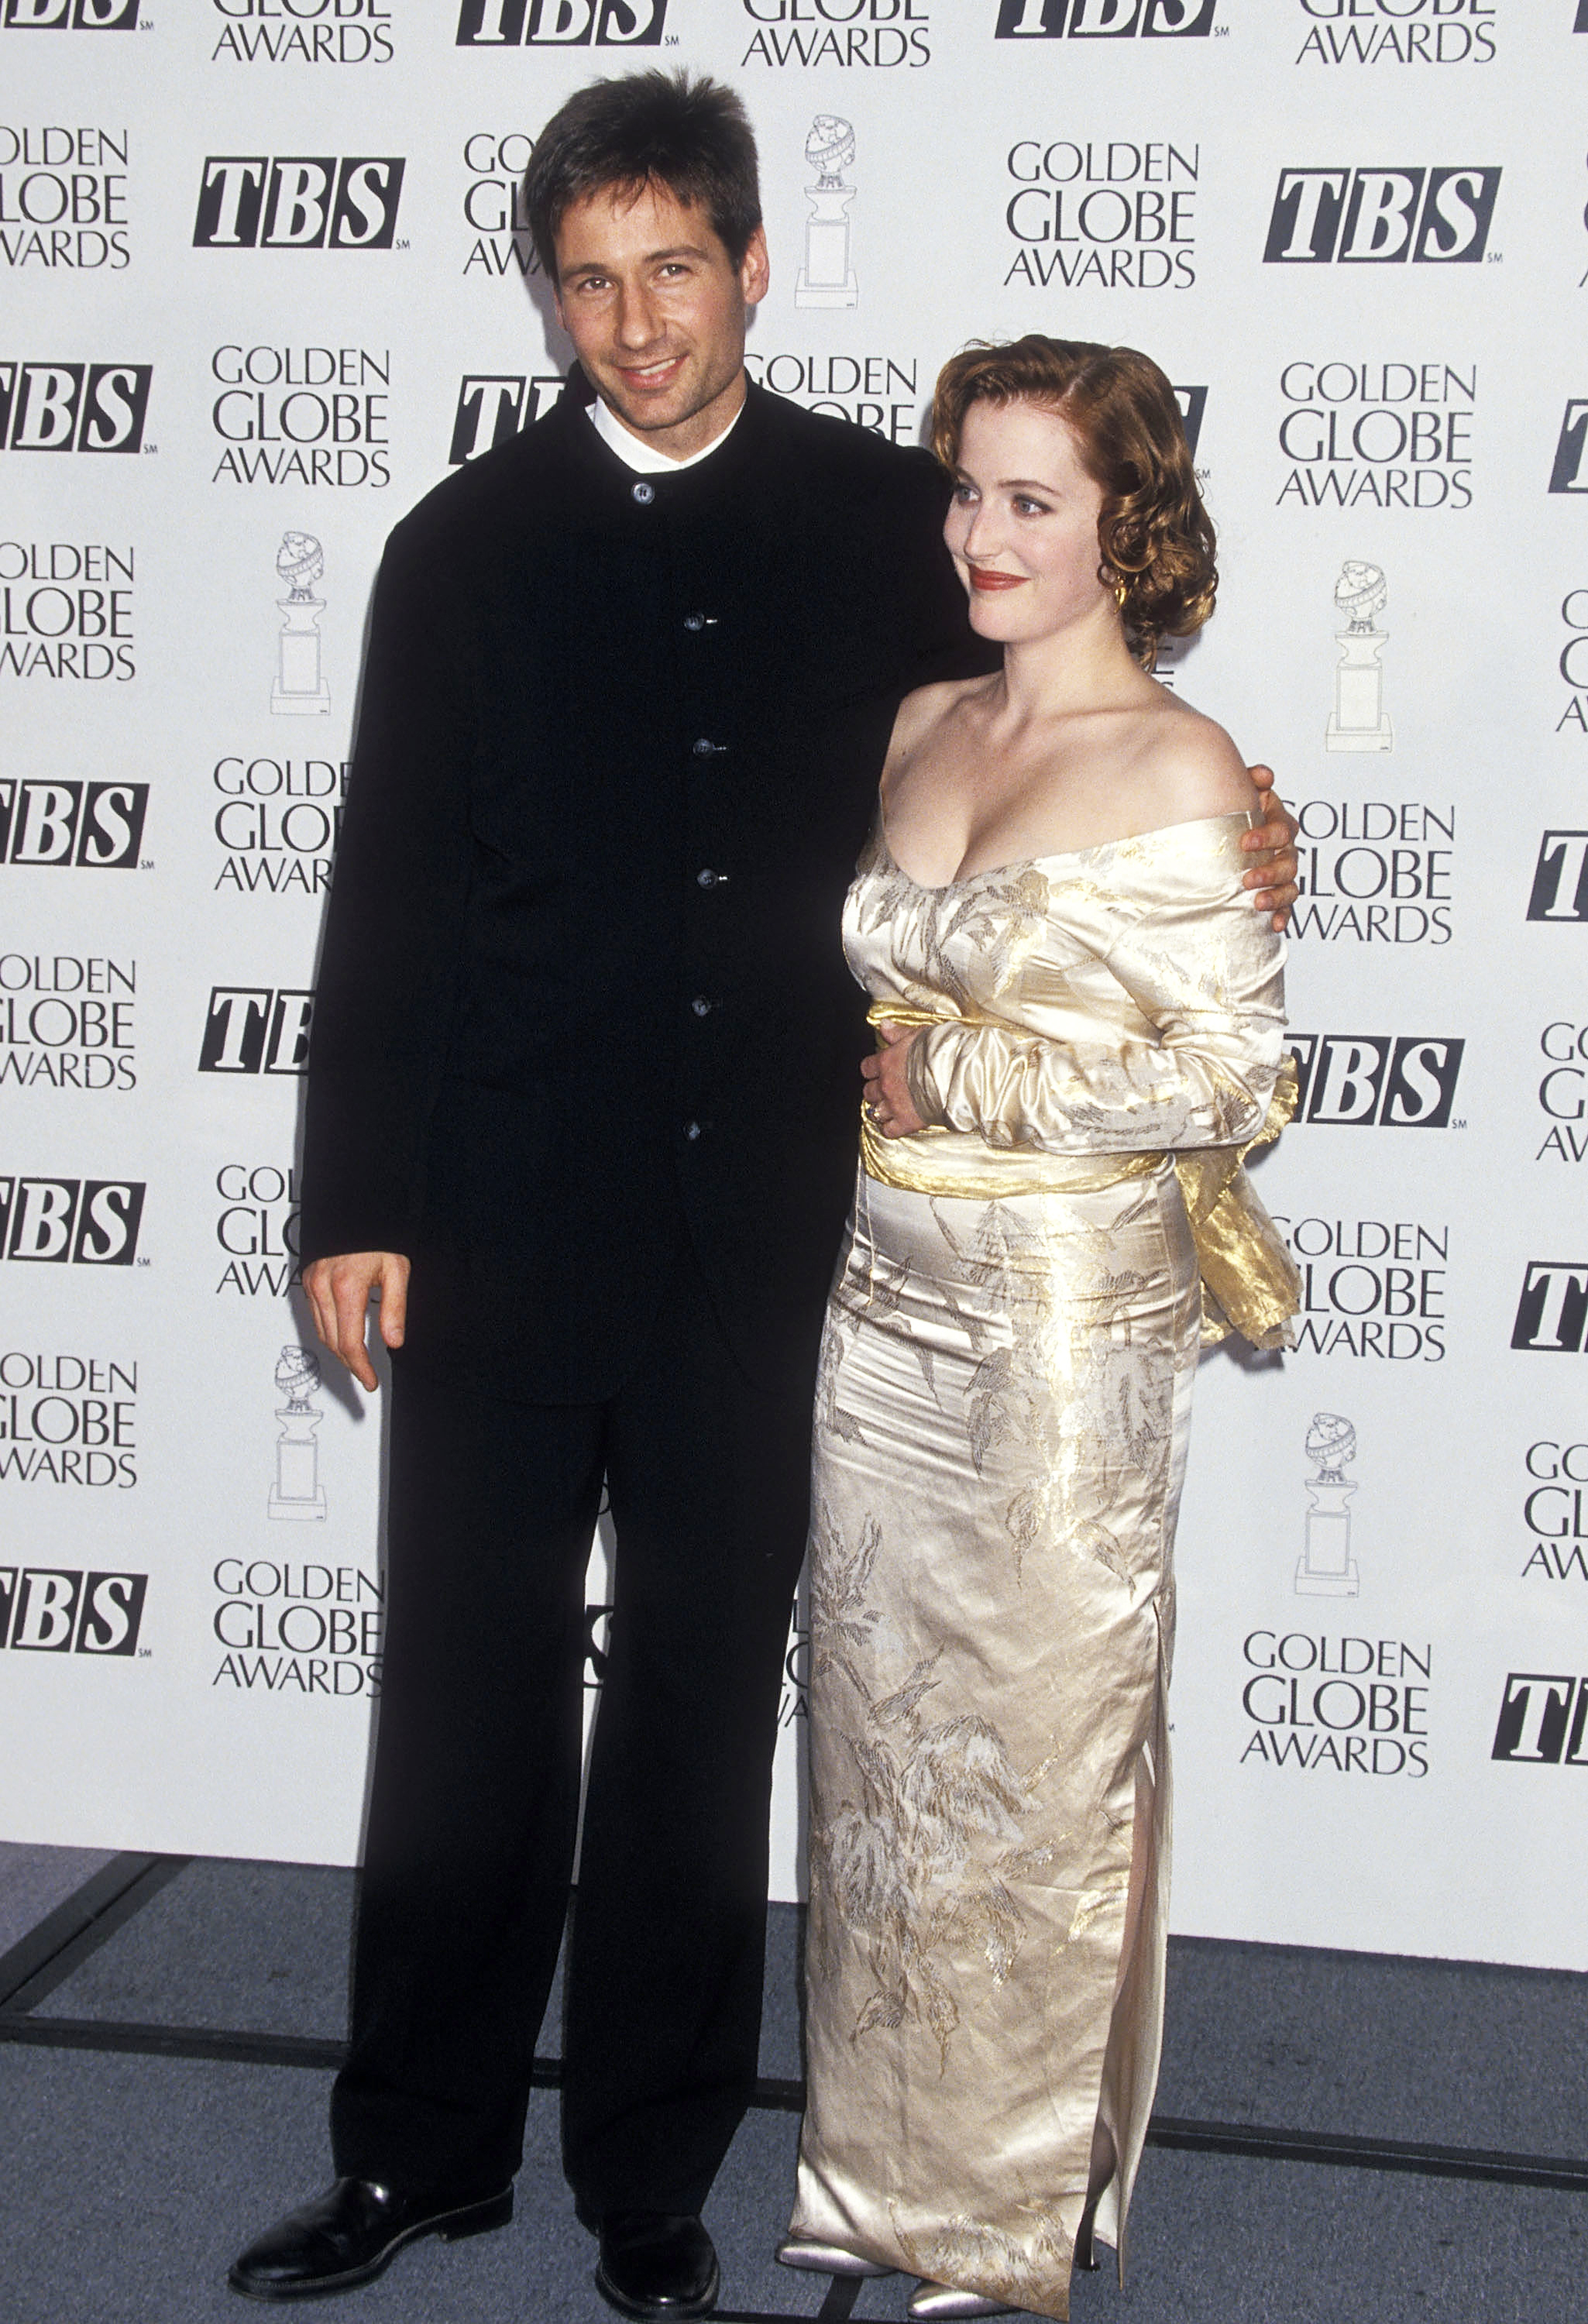 David Duchovny and Gillian Anderson attend the 52nd Annual Golden Globe Awards in Beverly Hills, Calif. on Jan. 21, 1995.